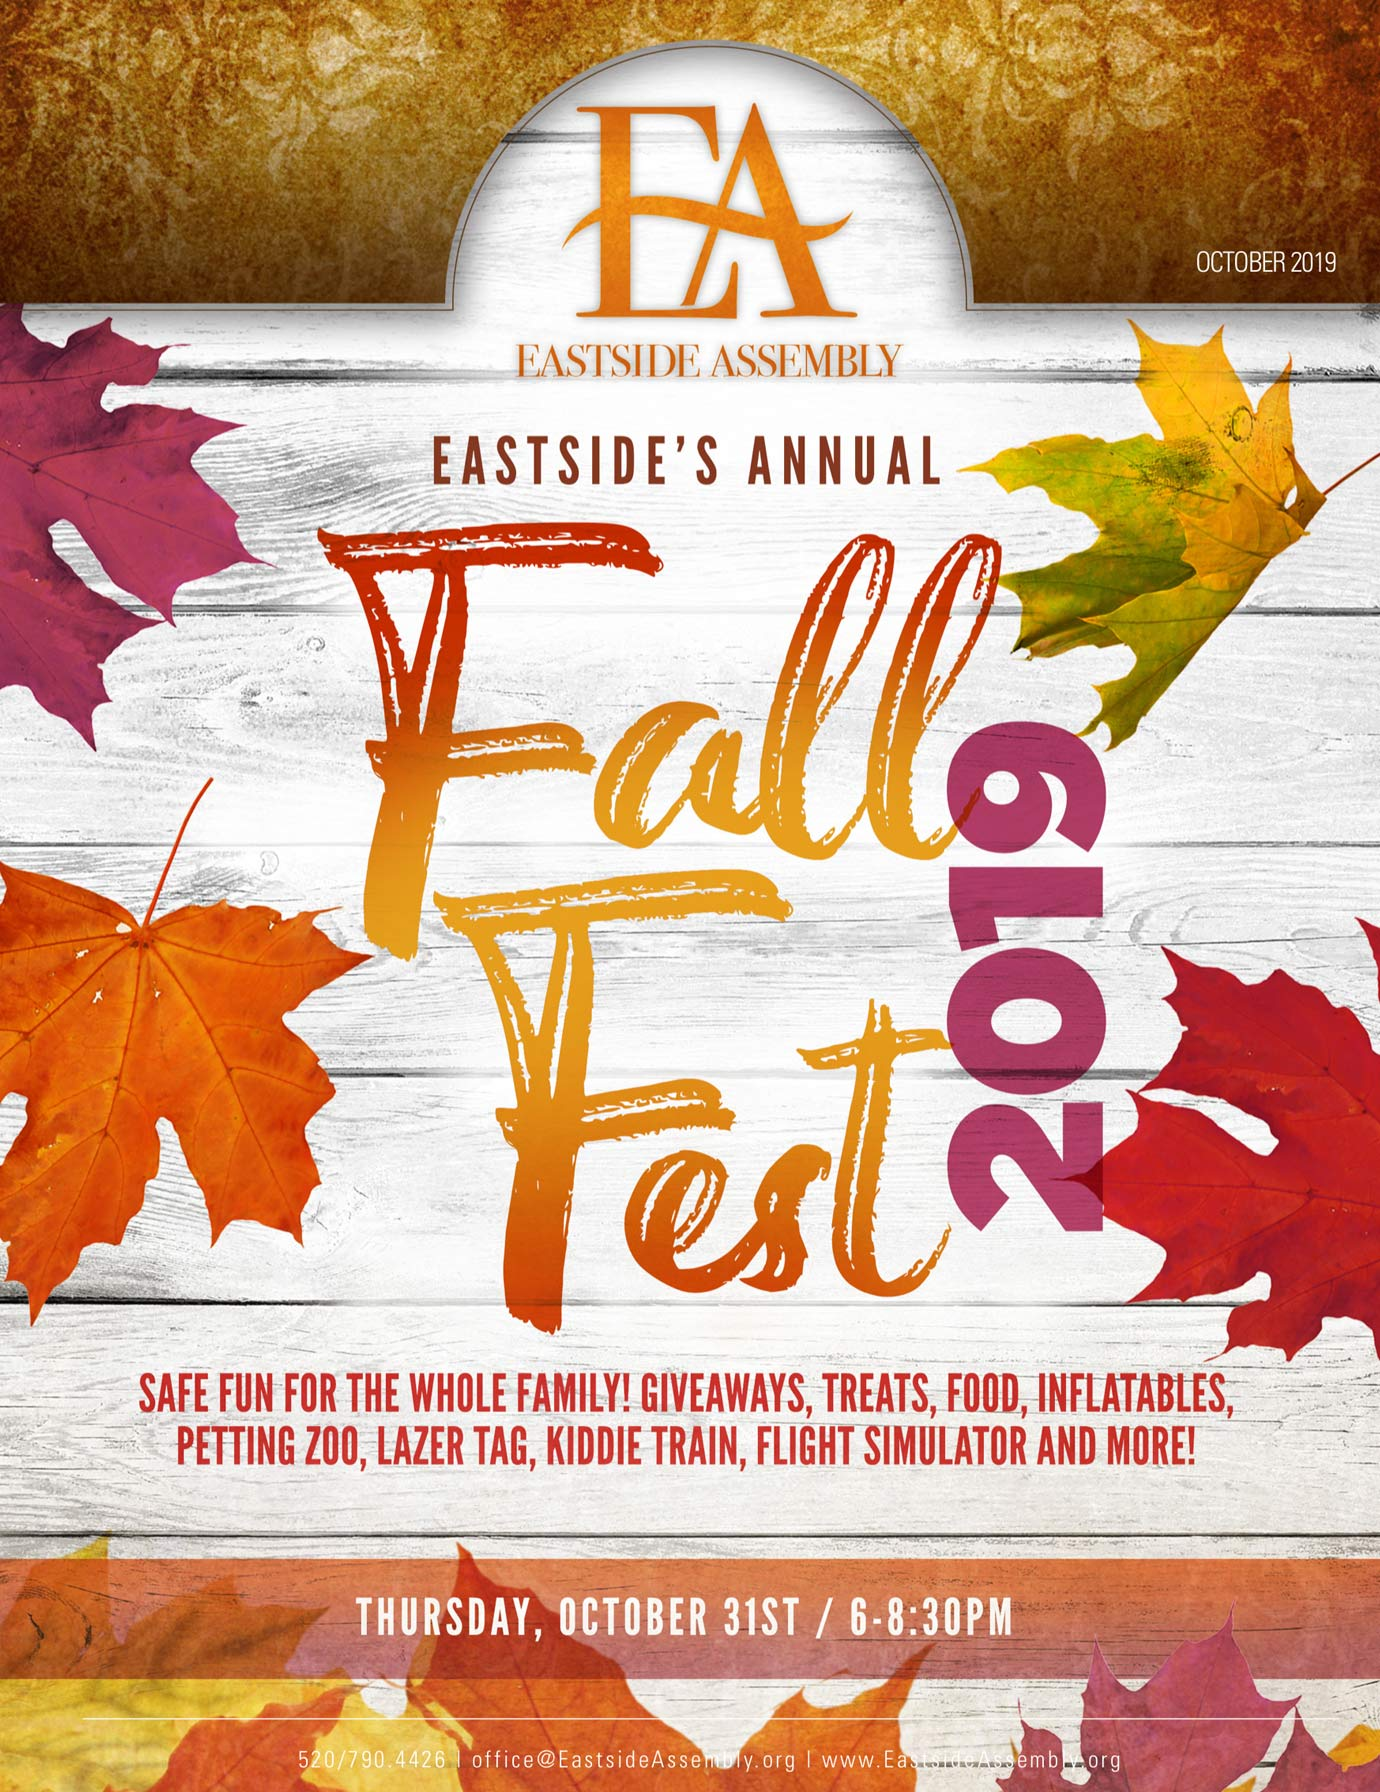 eastside_OCT2019_news_cover